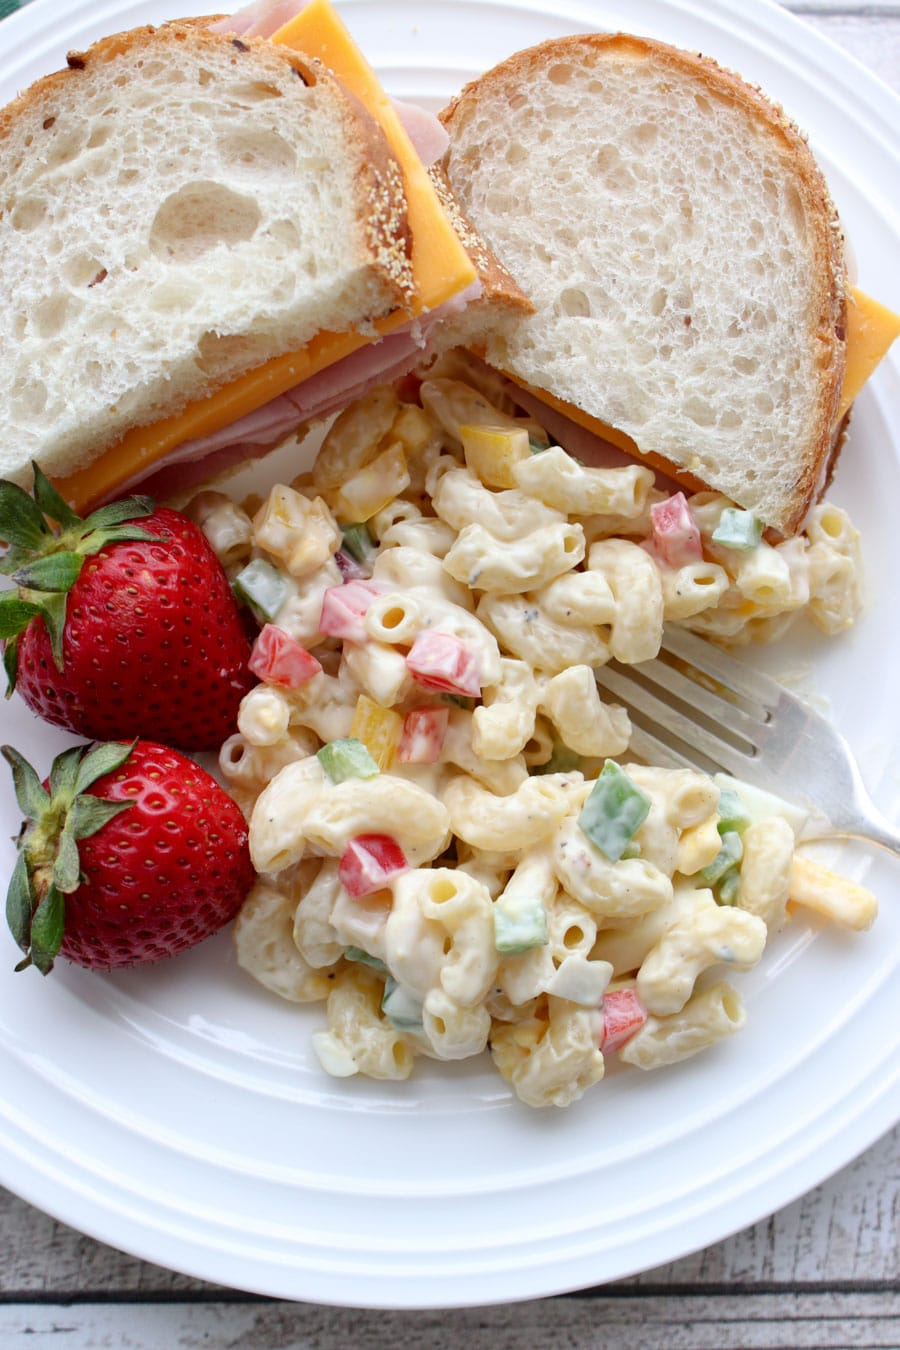 Scoop of macaroni salad on a plate with a sandwich and strawberries